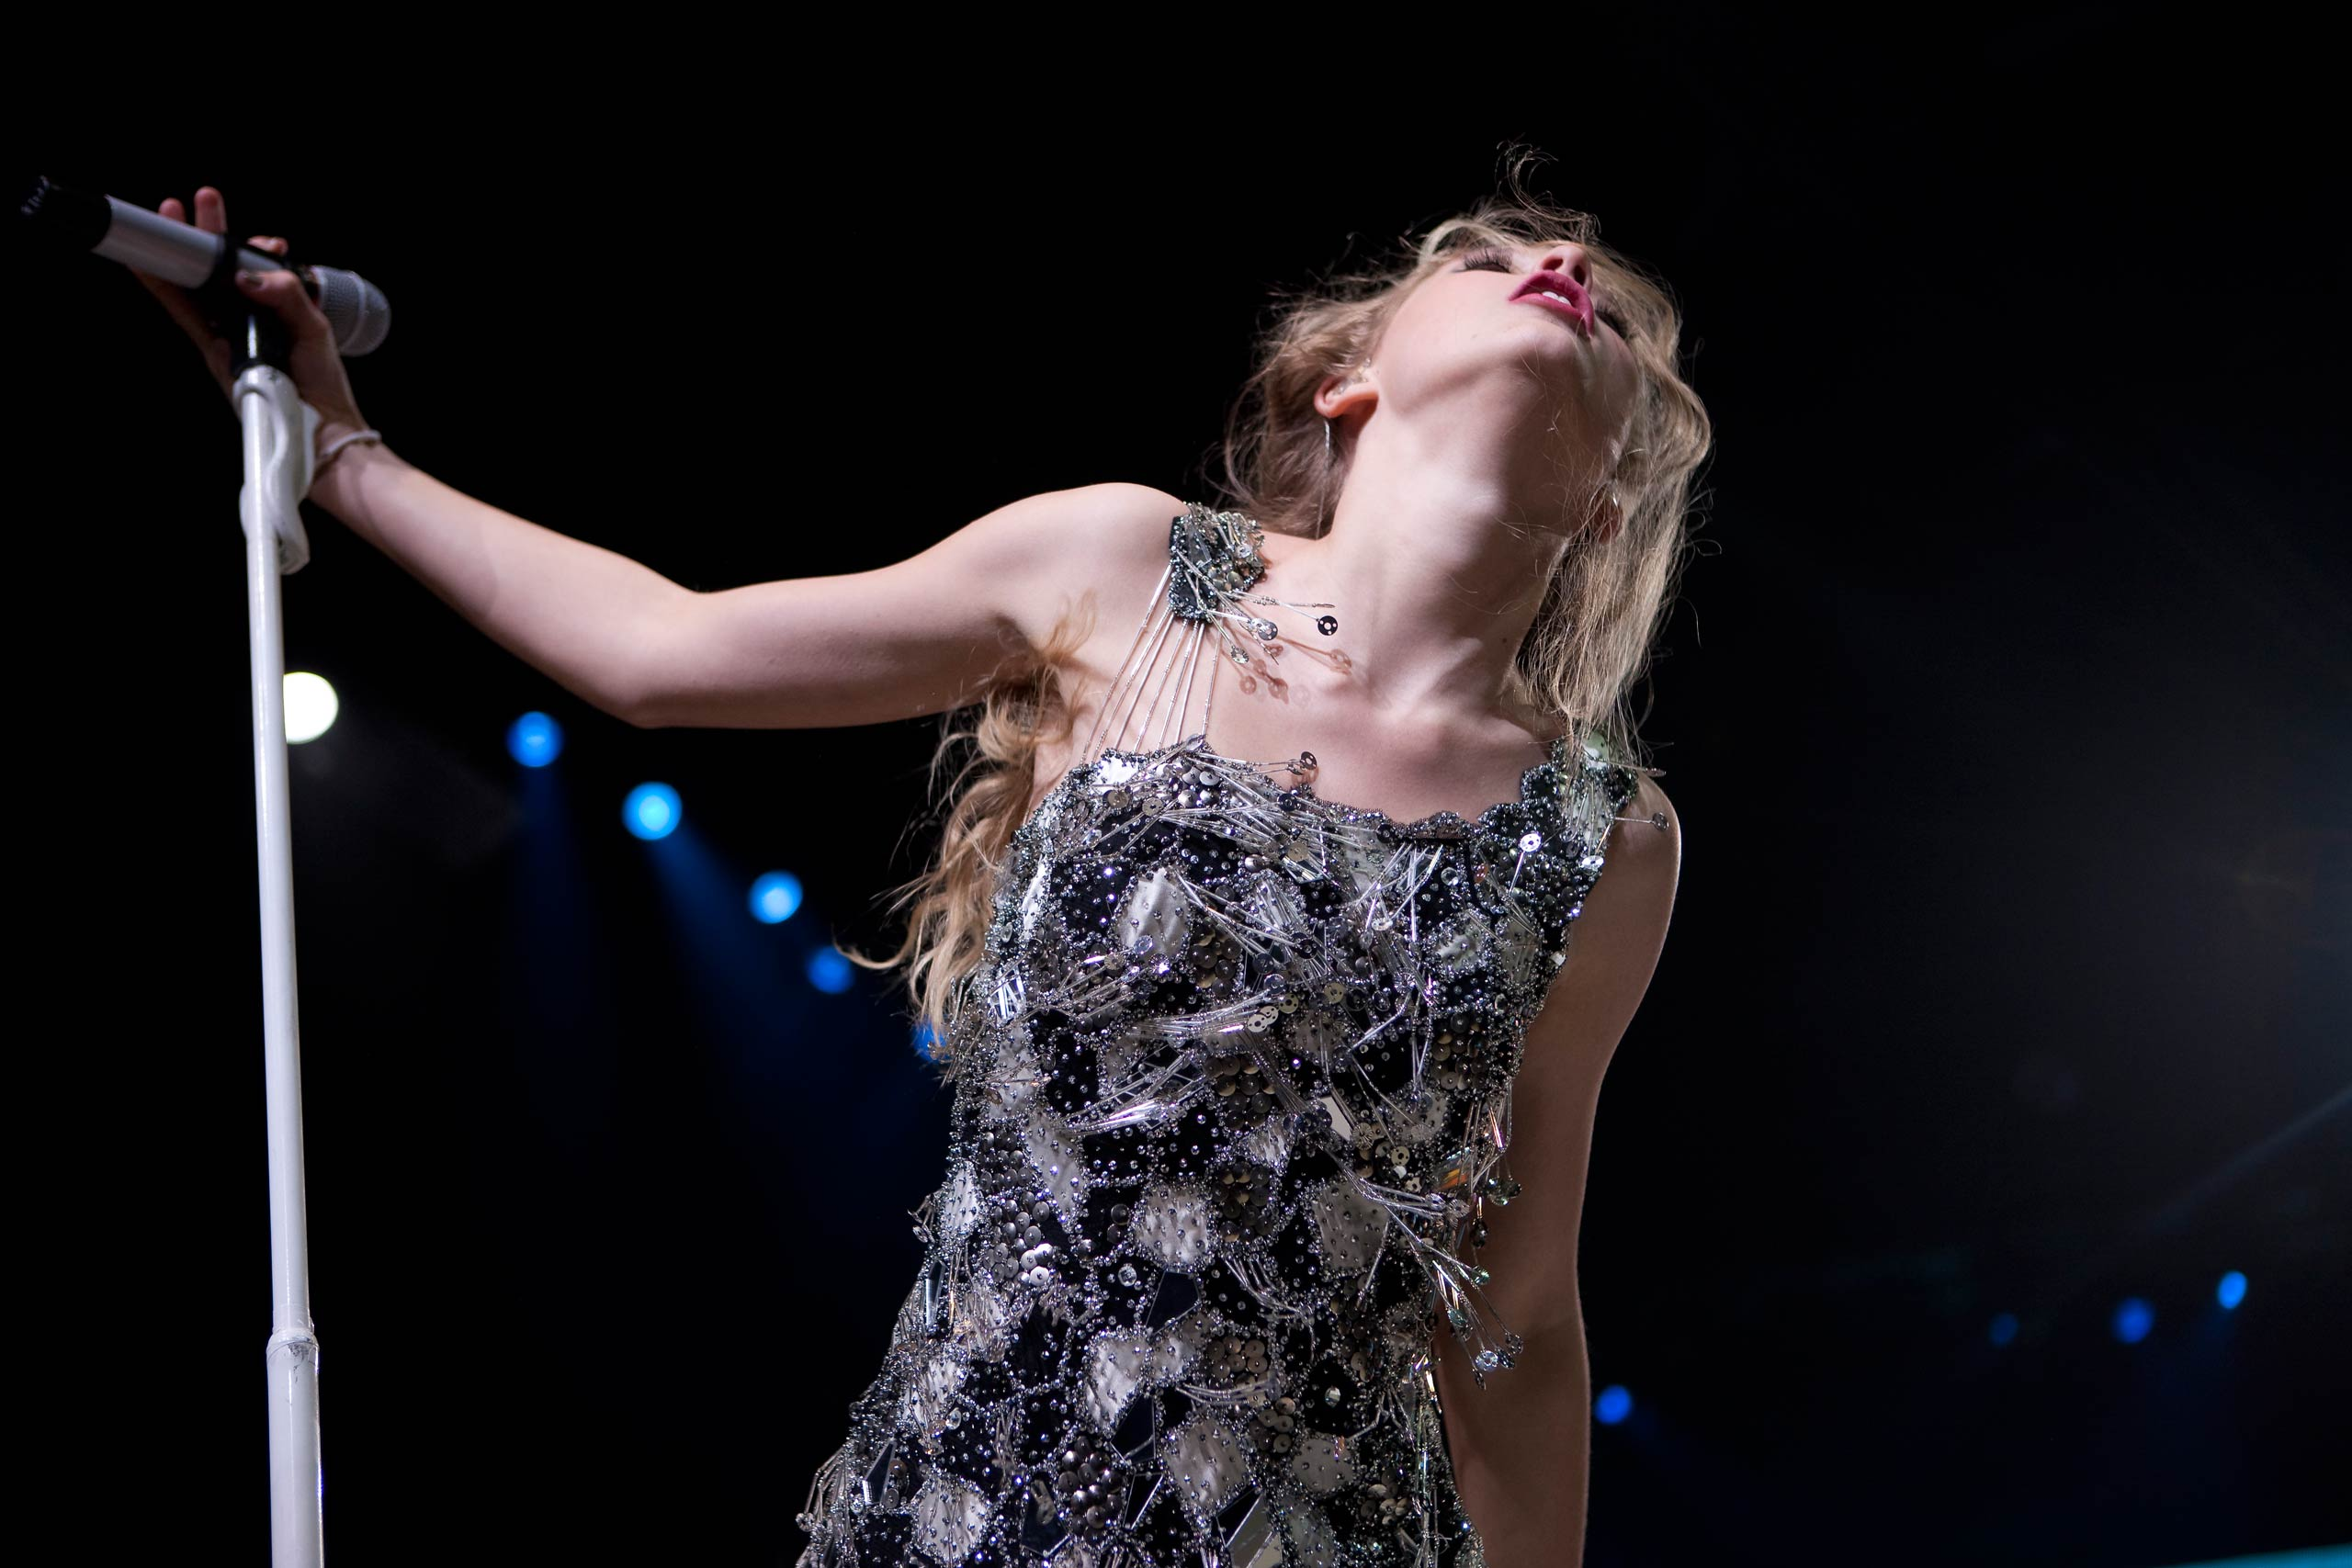 Taylor Swift performs during her Fearless tour in Auburn Hills outside Detroit, Mich. on March 23, 2010.